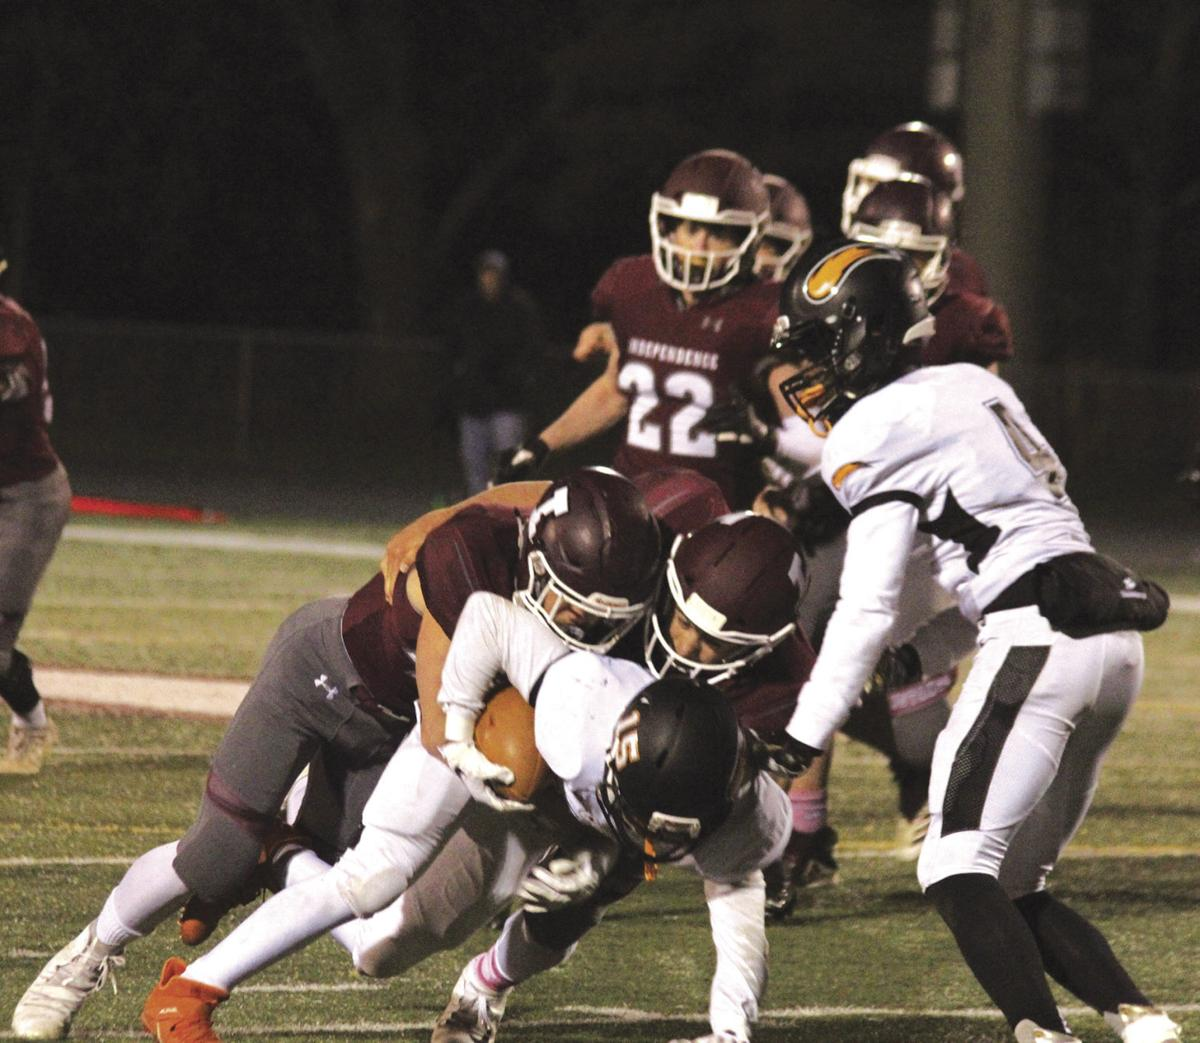 Independence looks to avenge last year's defeat to Waverly-Shell Rock